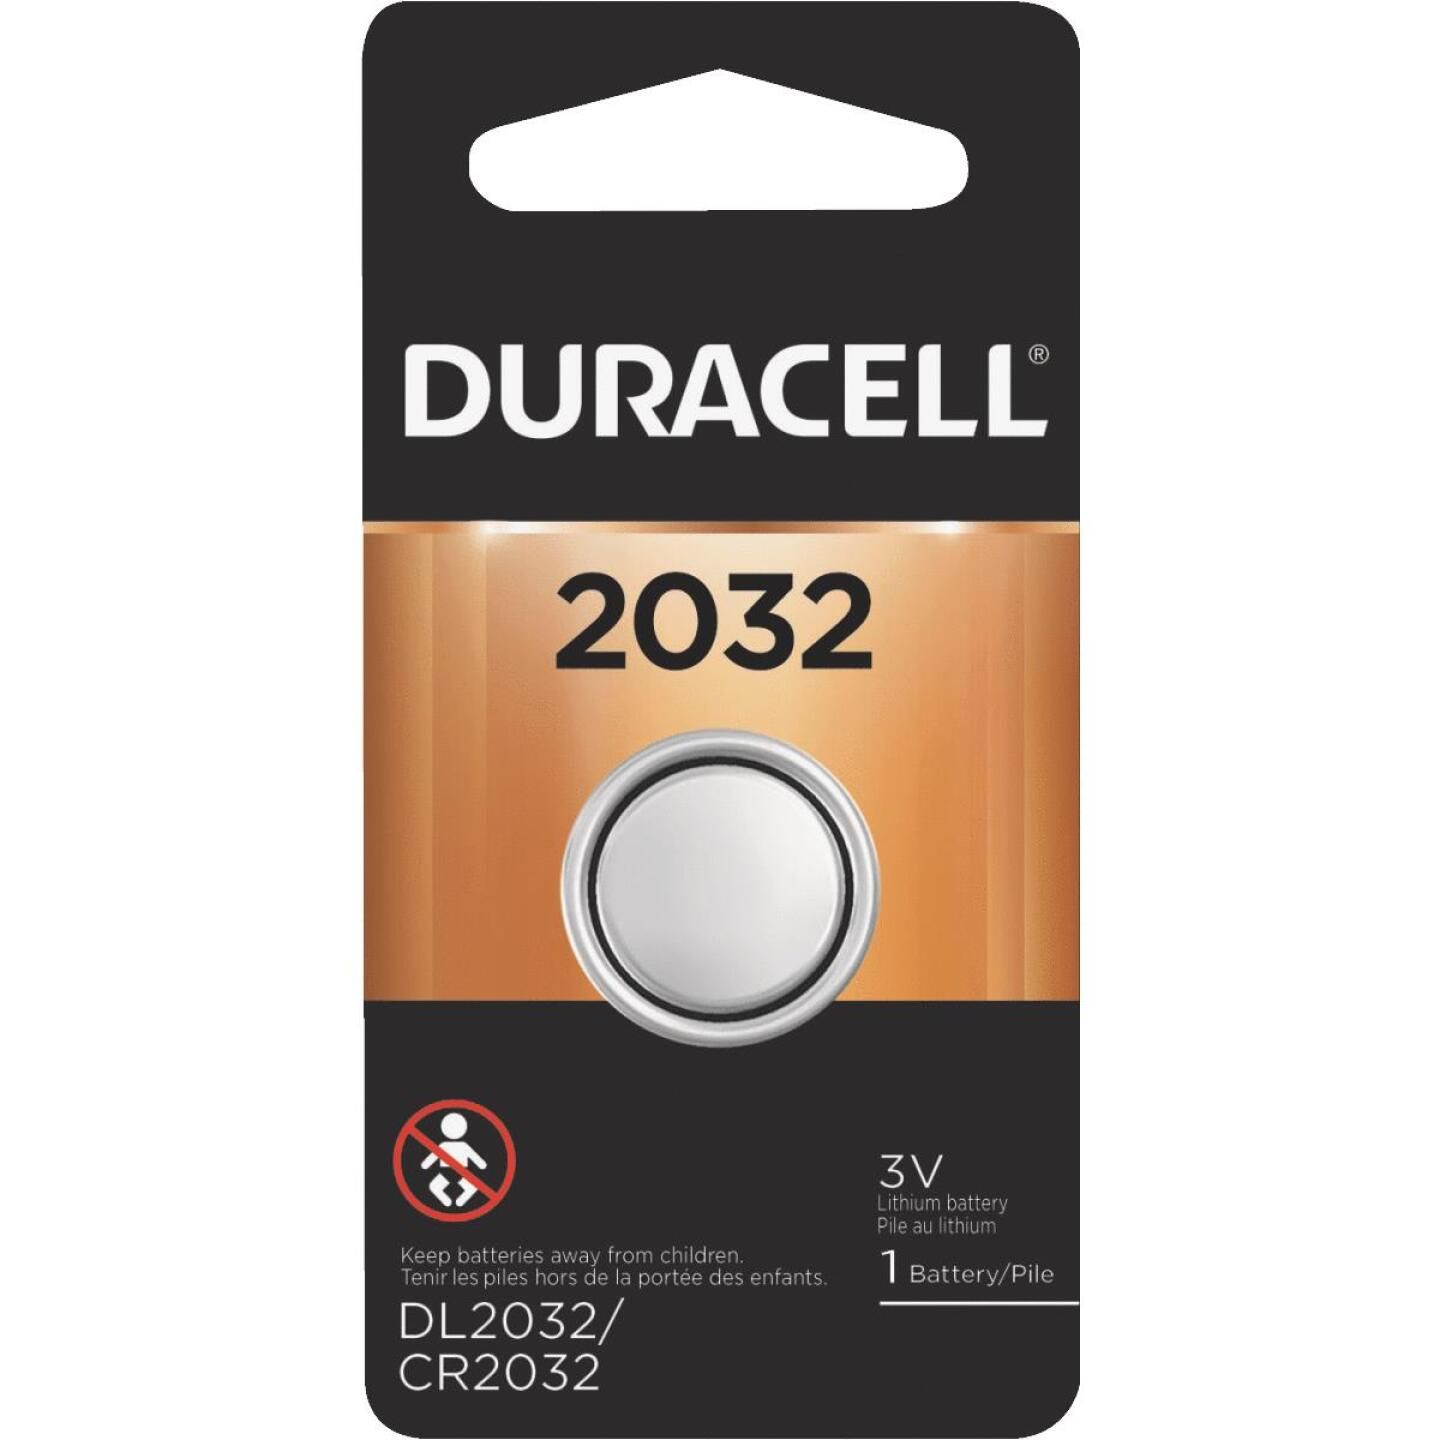 Duracell 2032 Lithium Coin Cell Battery Image 1